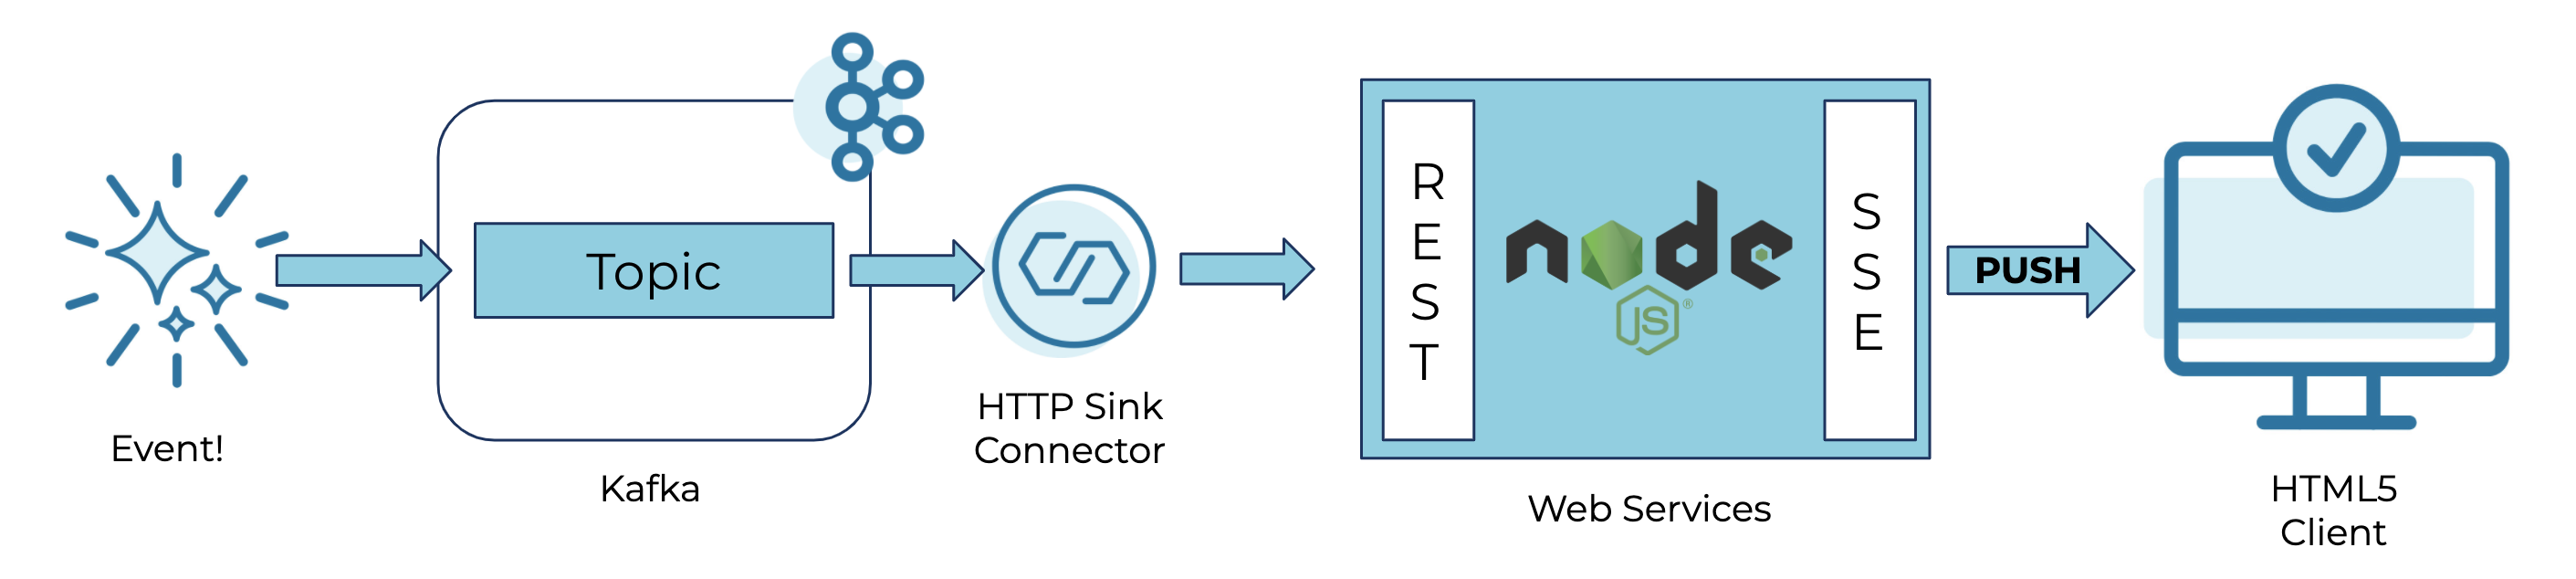 Event! ➝ Kafka ➝ HTTP Sink Connector ➝ Web Services ➝ PUSH ➝ HTML5 Client